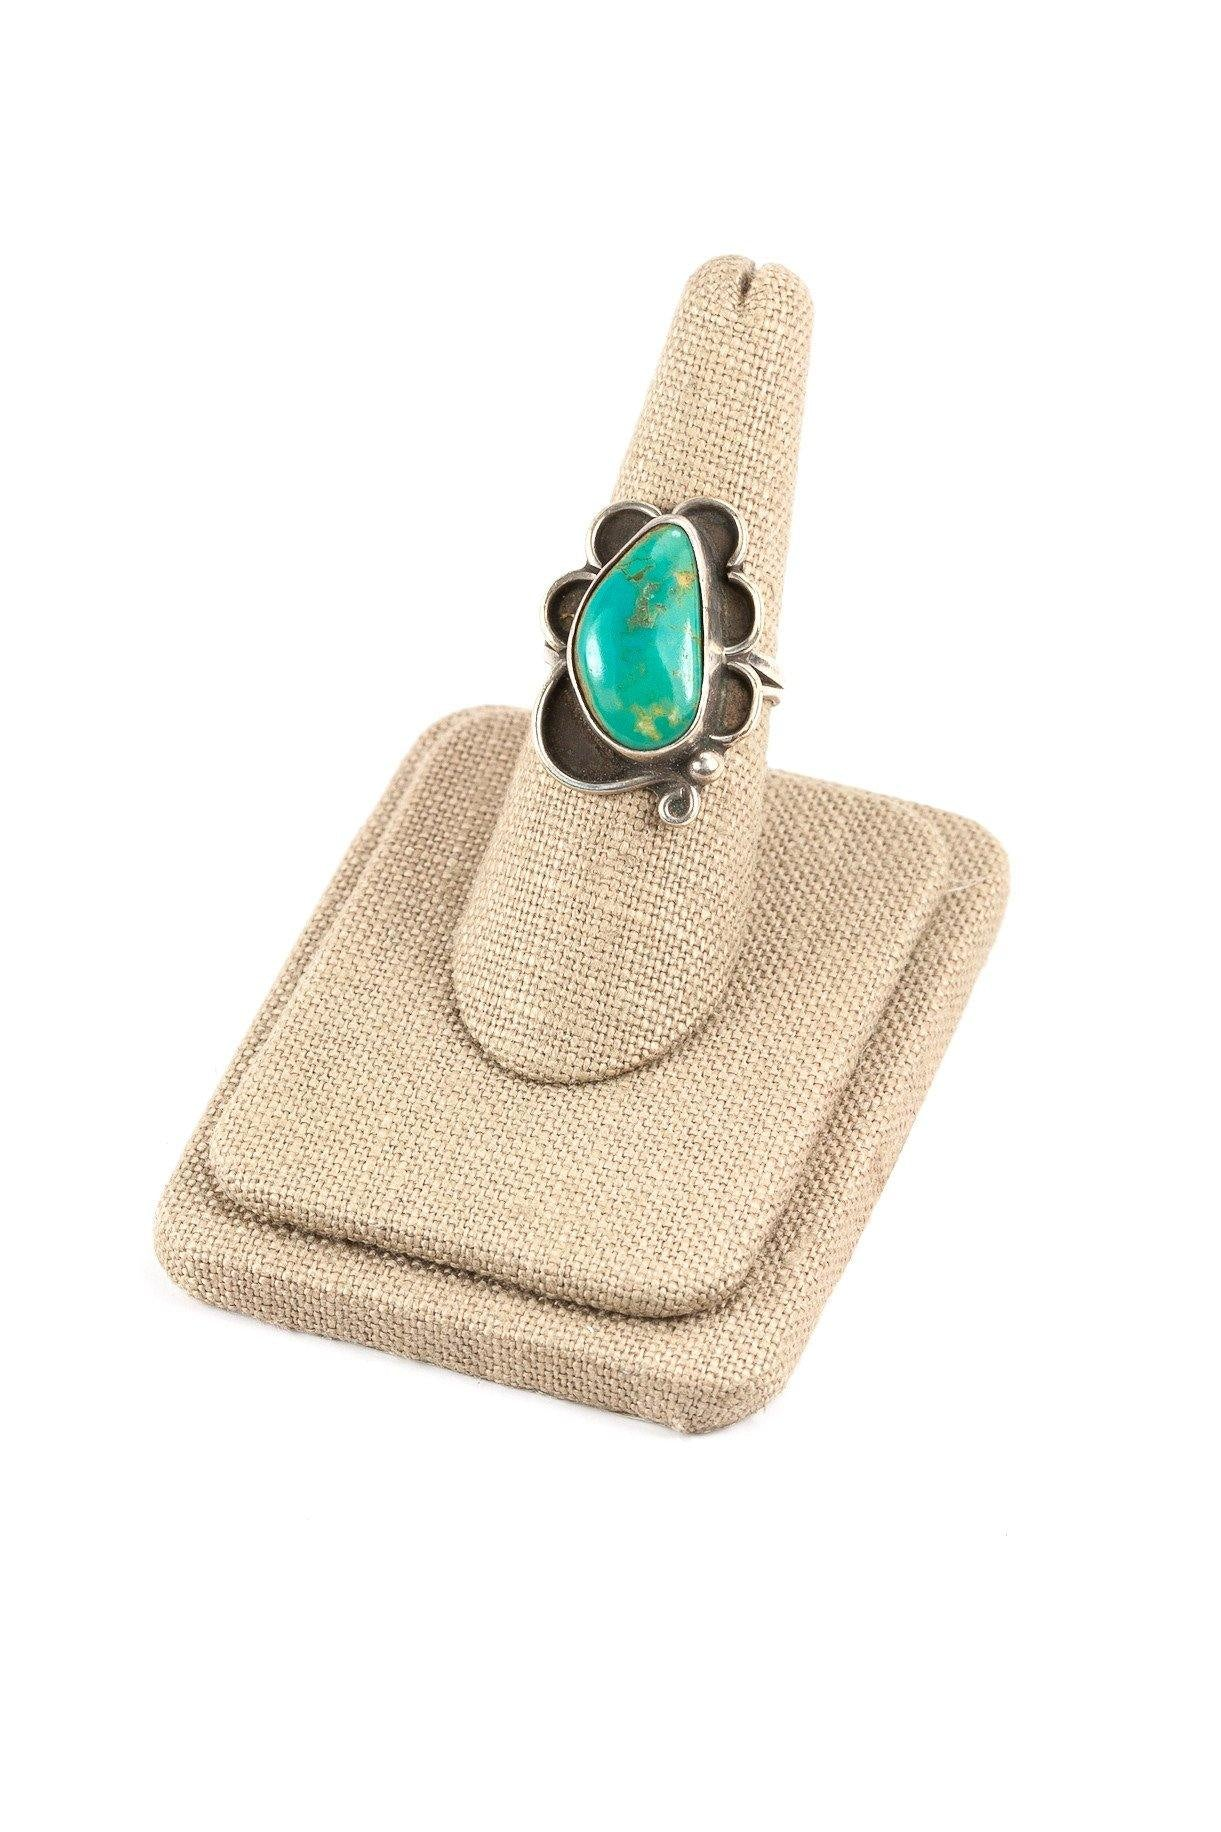 60's__Vintage__Scalloped Turquoise Sterling Ring